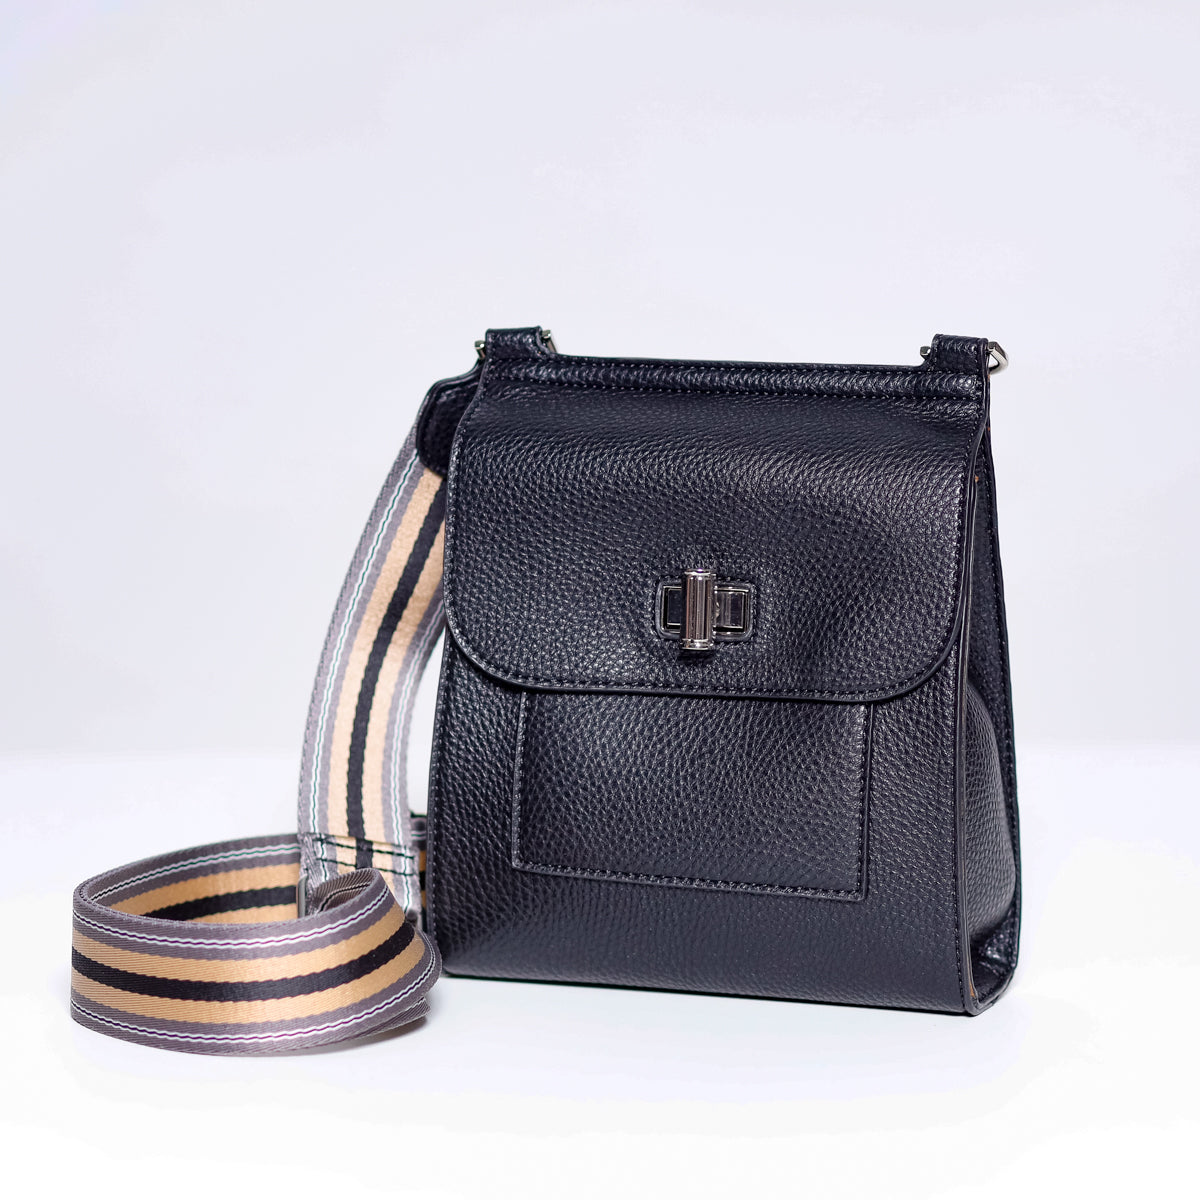 Sondra Roberts Cross Body in Pebble Black